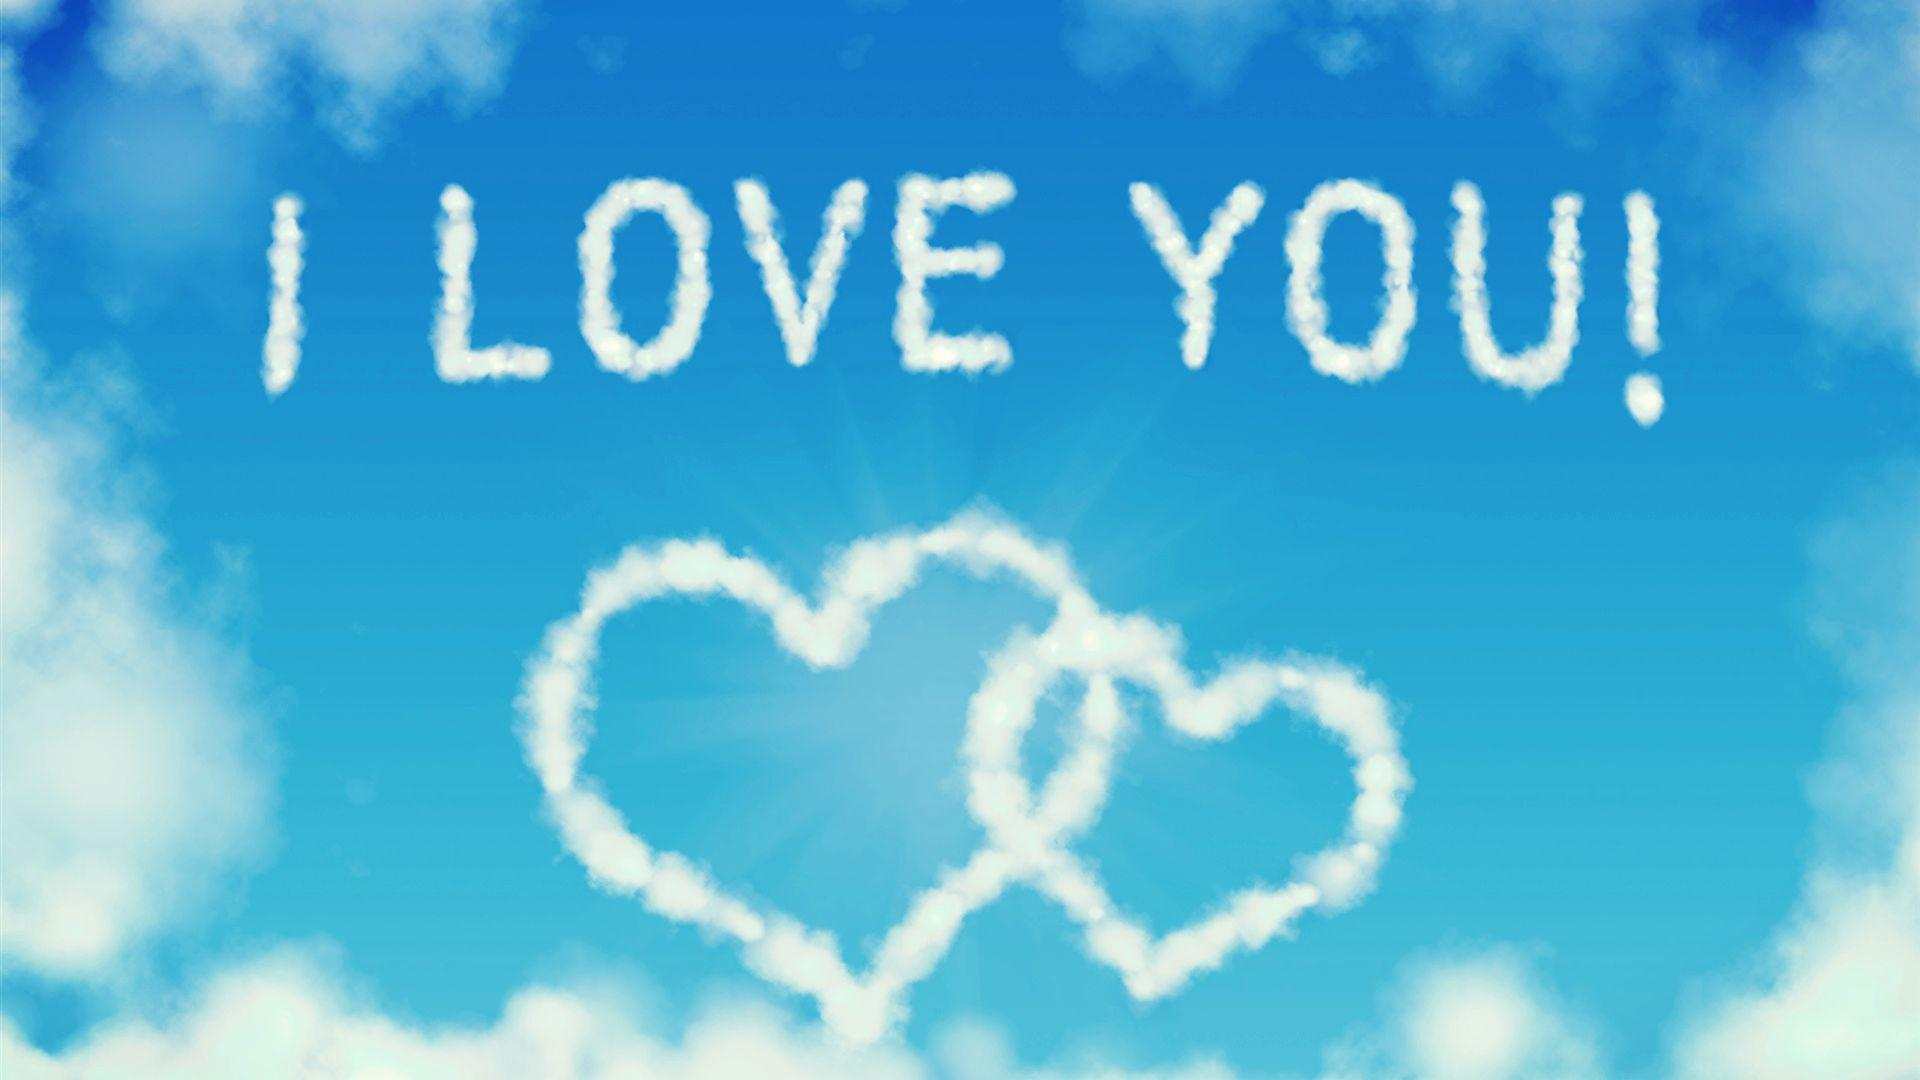 I Love You Image Wallpapers 1920x1080